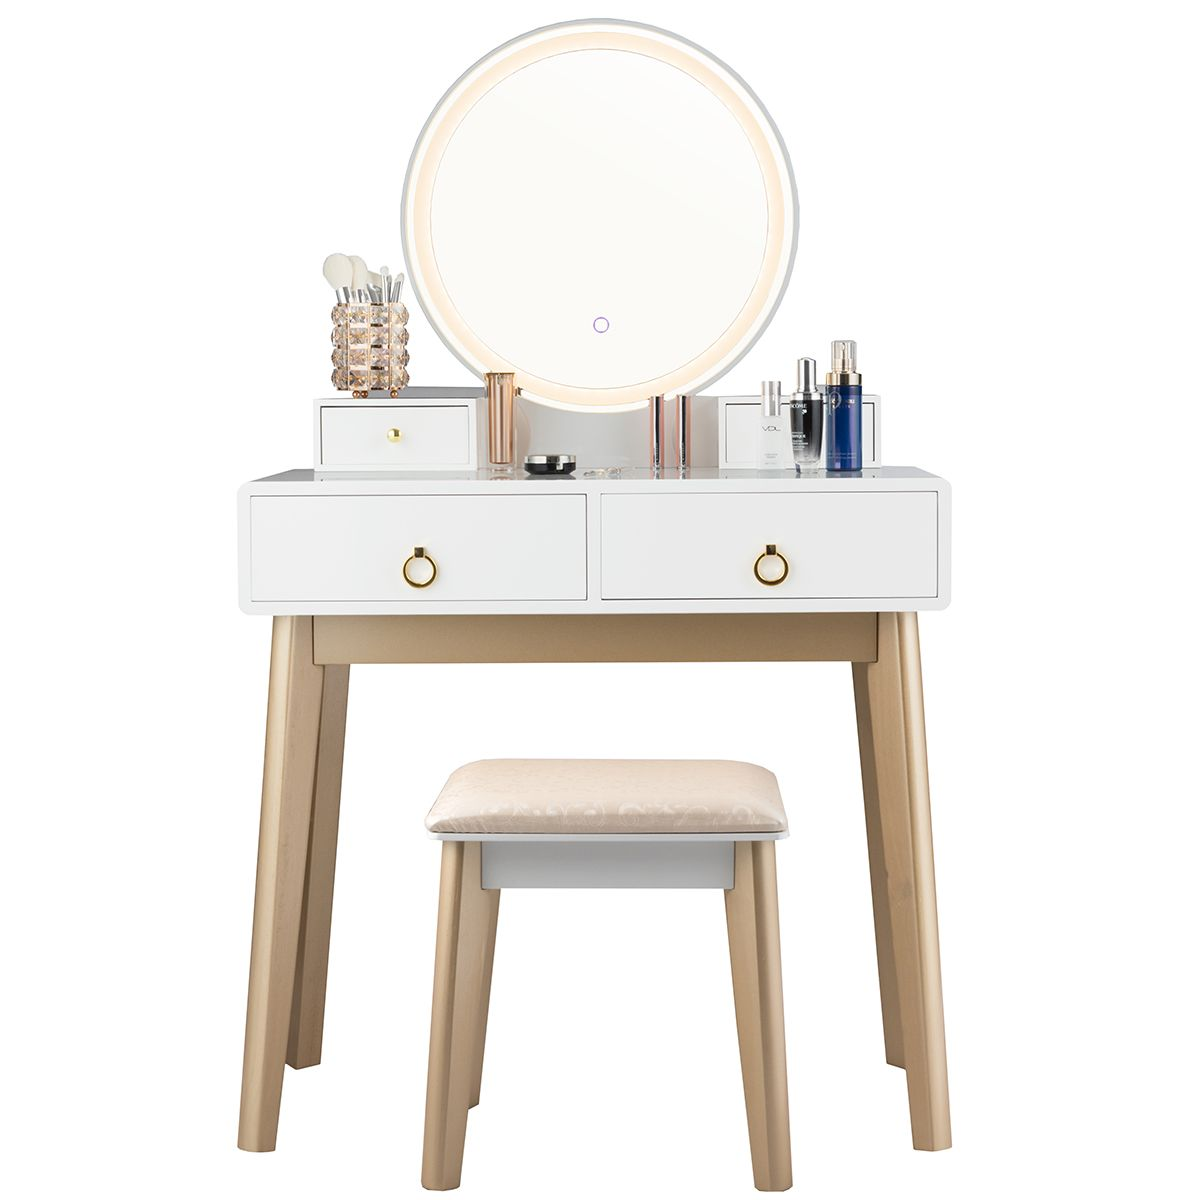 Gymax Makeup Dressing Vanity Table Set W Touch Screen Dimming Mirror Walmart Com In 2020 Vanity Table Set Vanity Table Vanity Set